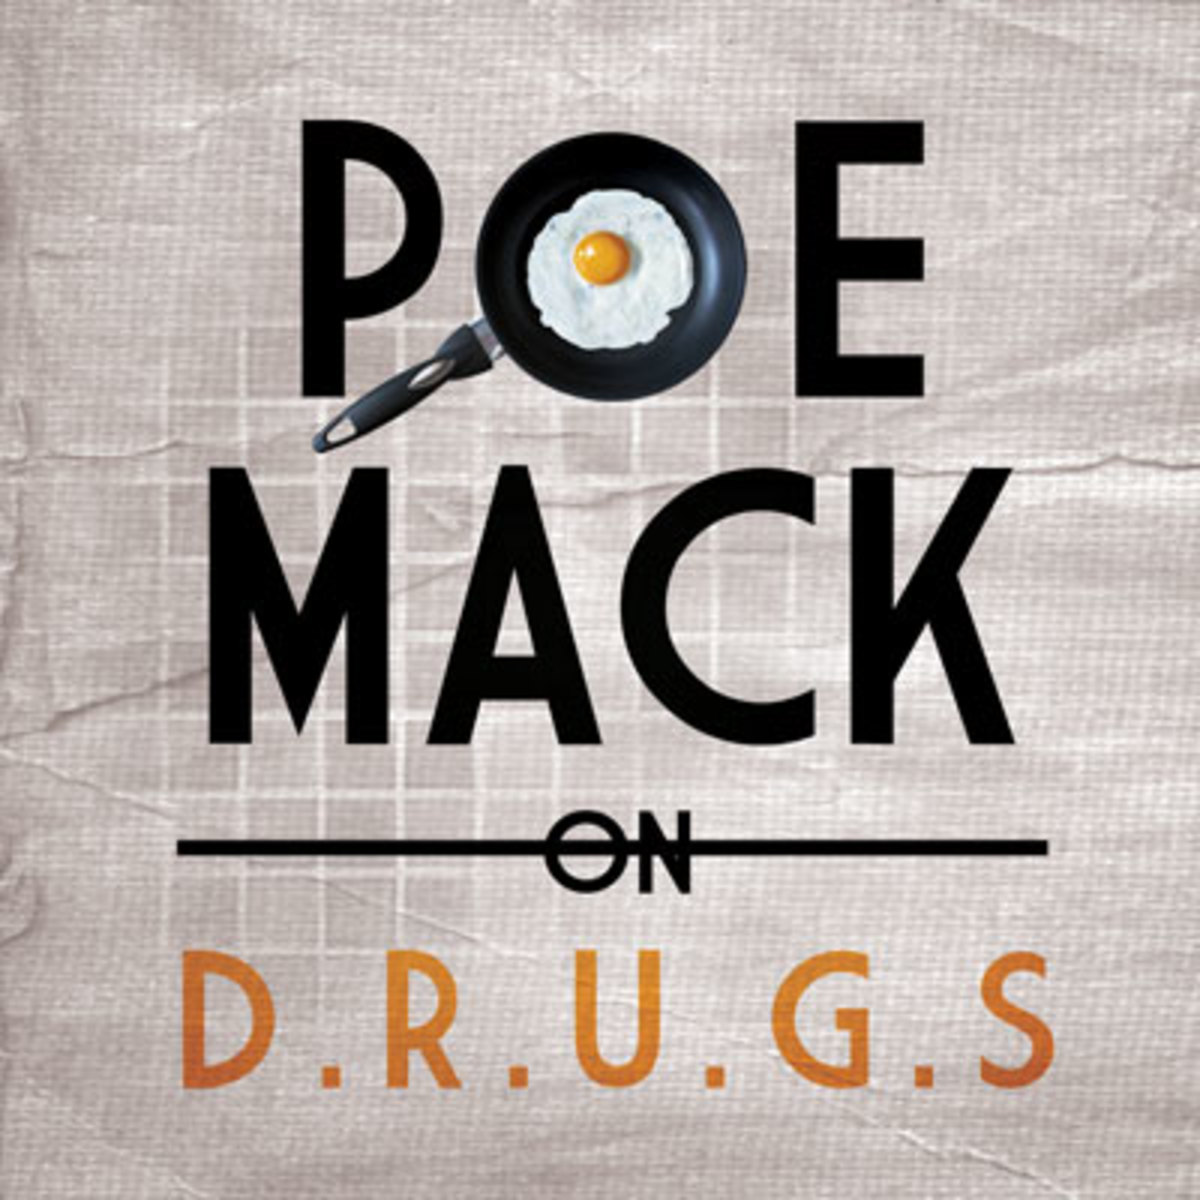 poemack-ondrugs.jpg